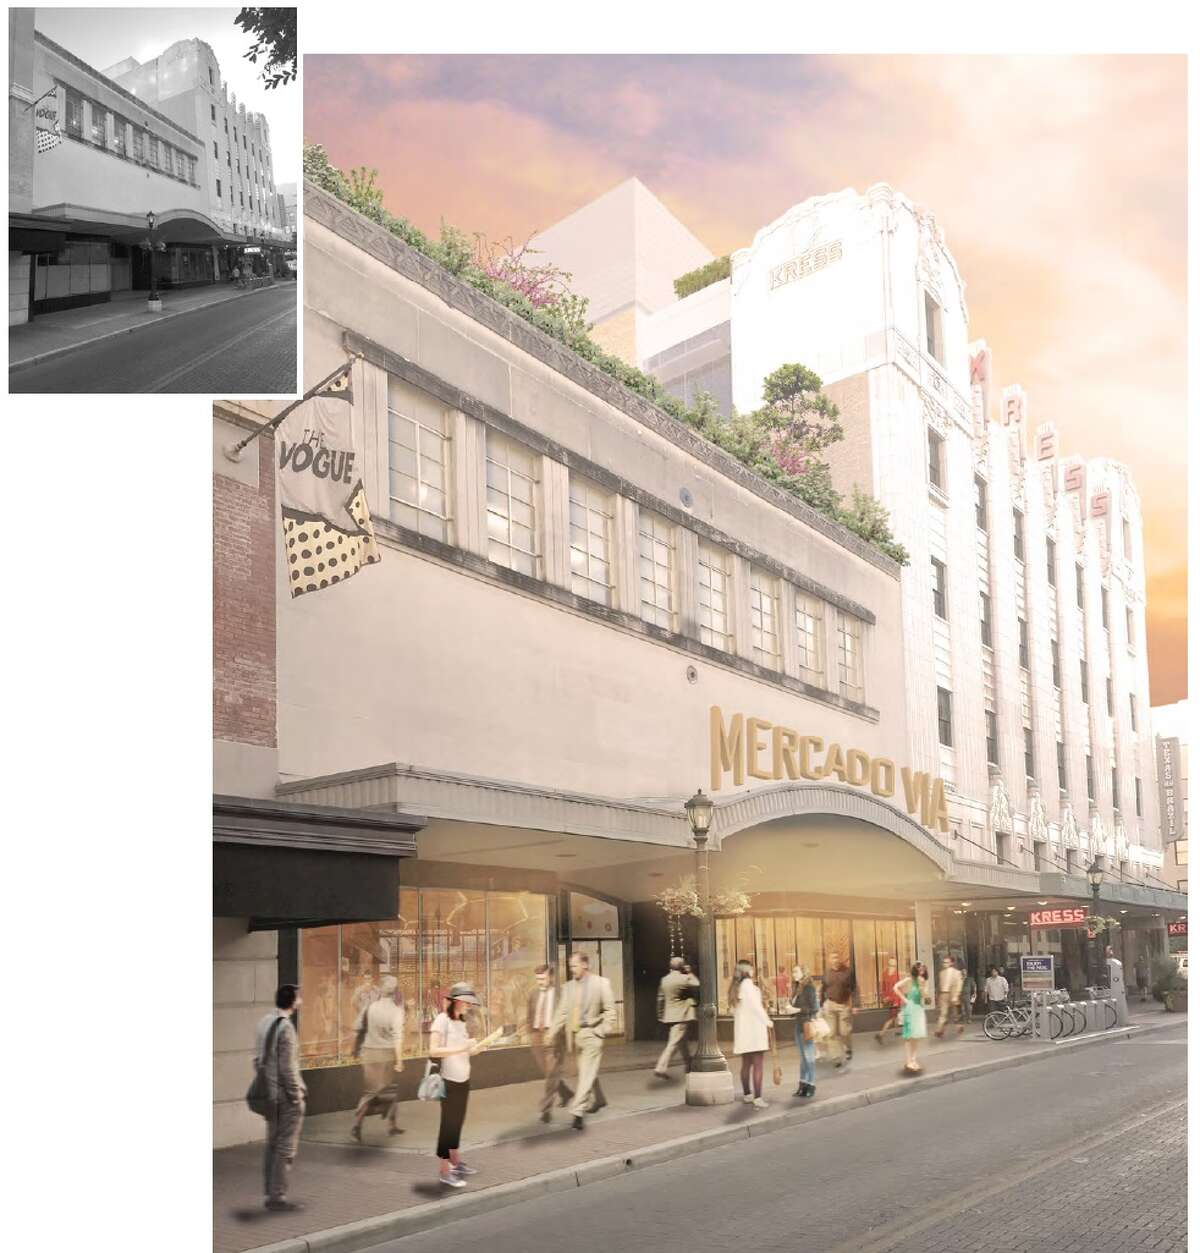 The development will include a food hall with about 10 vendors modeled after the Mercado Roma in Mexico City.